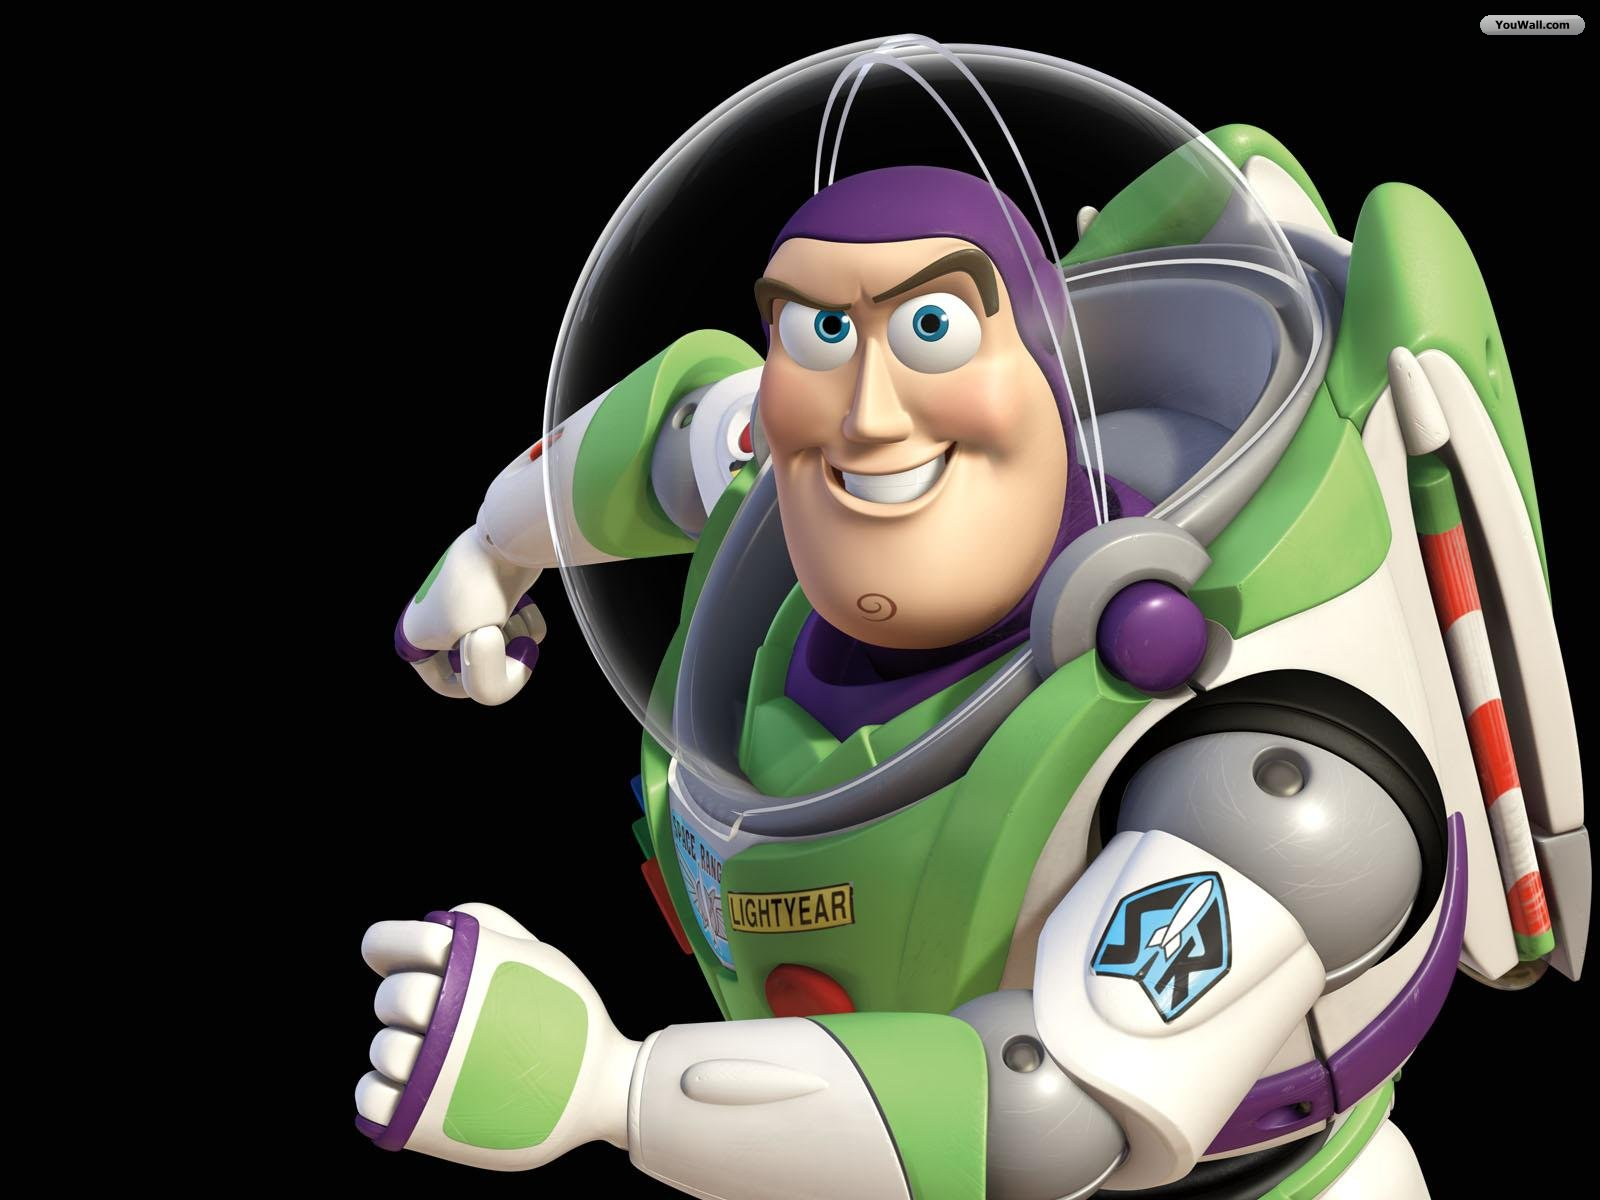 Toy Story HD Free Wallpapers Toy Story 3 Free YouTube - buzz lightyear in toy story wallpapers